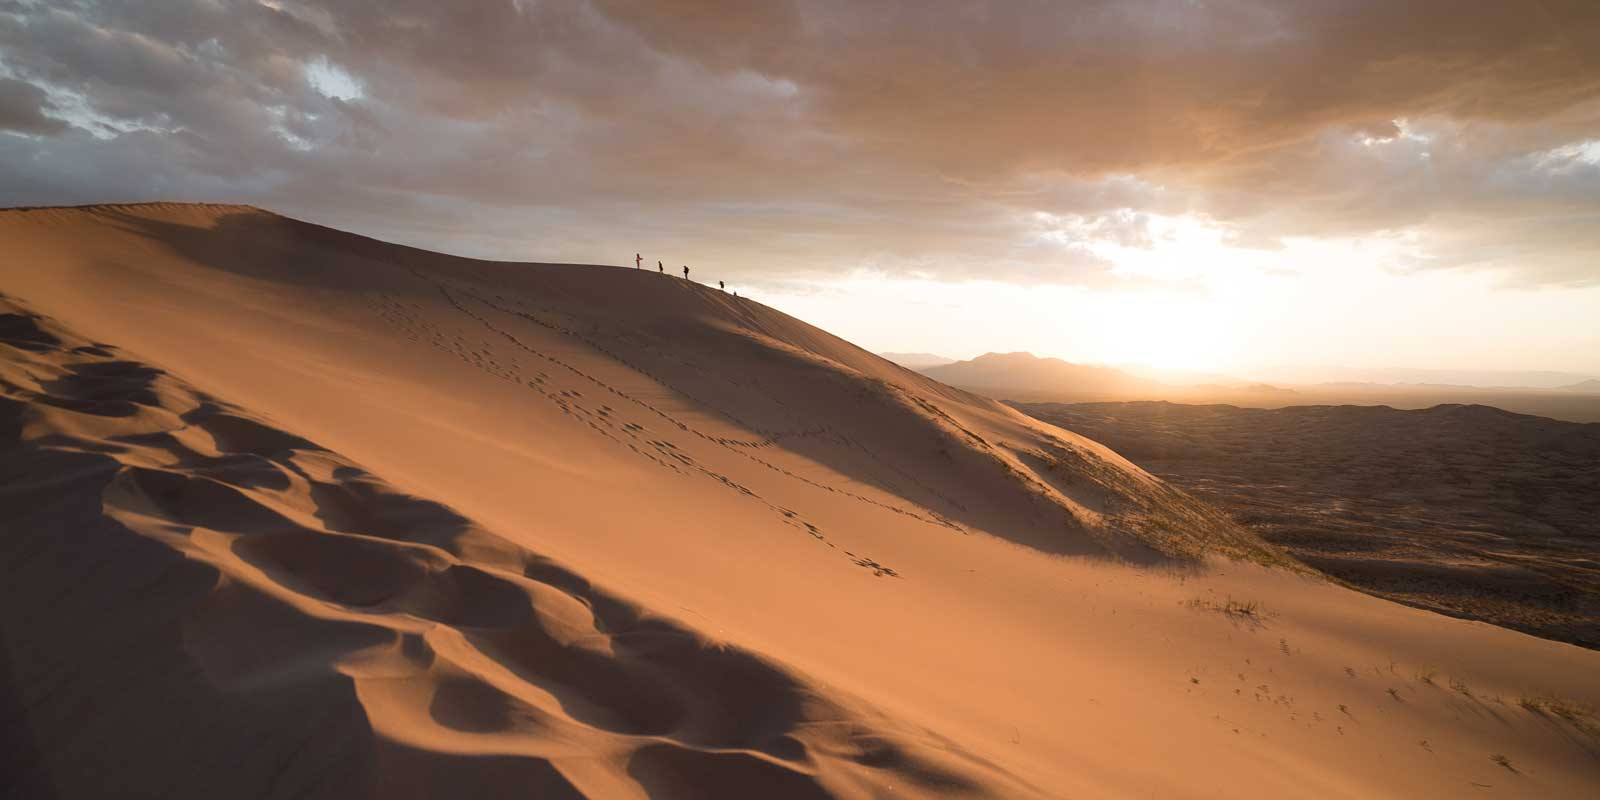 Landscape of the Mojave Desert with tiny silhouettes of people climbing the sand